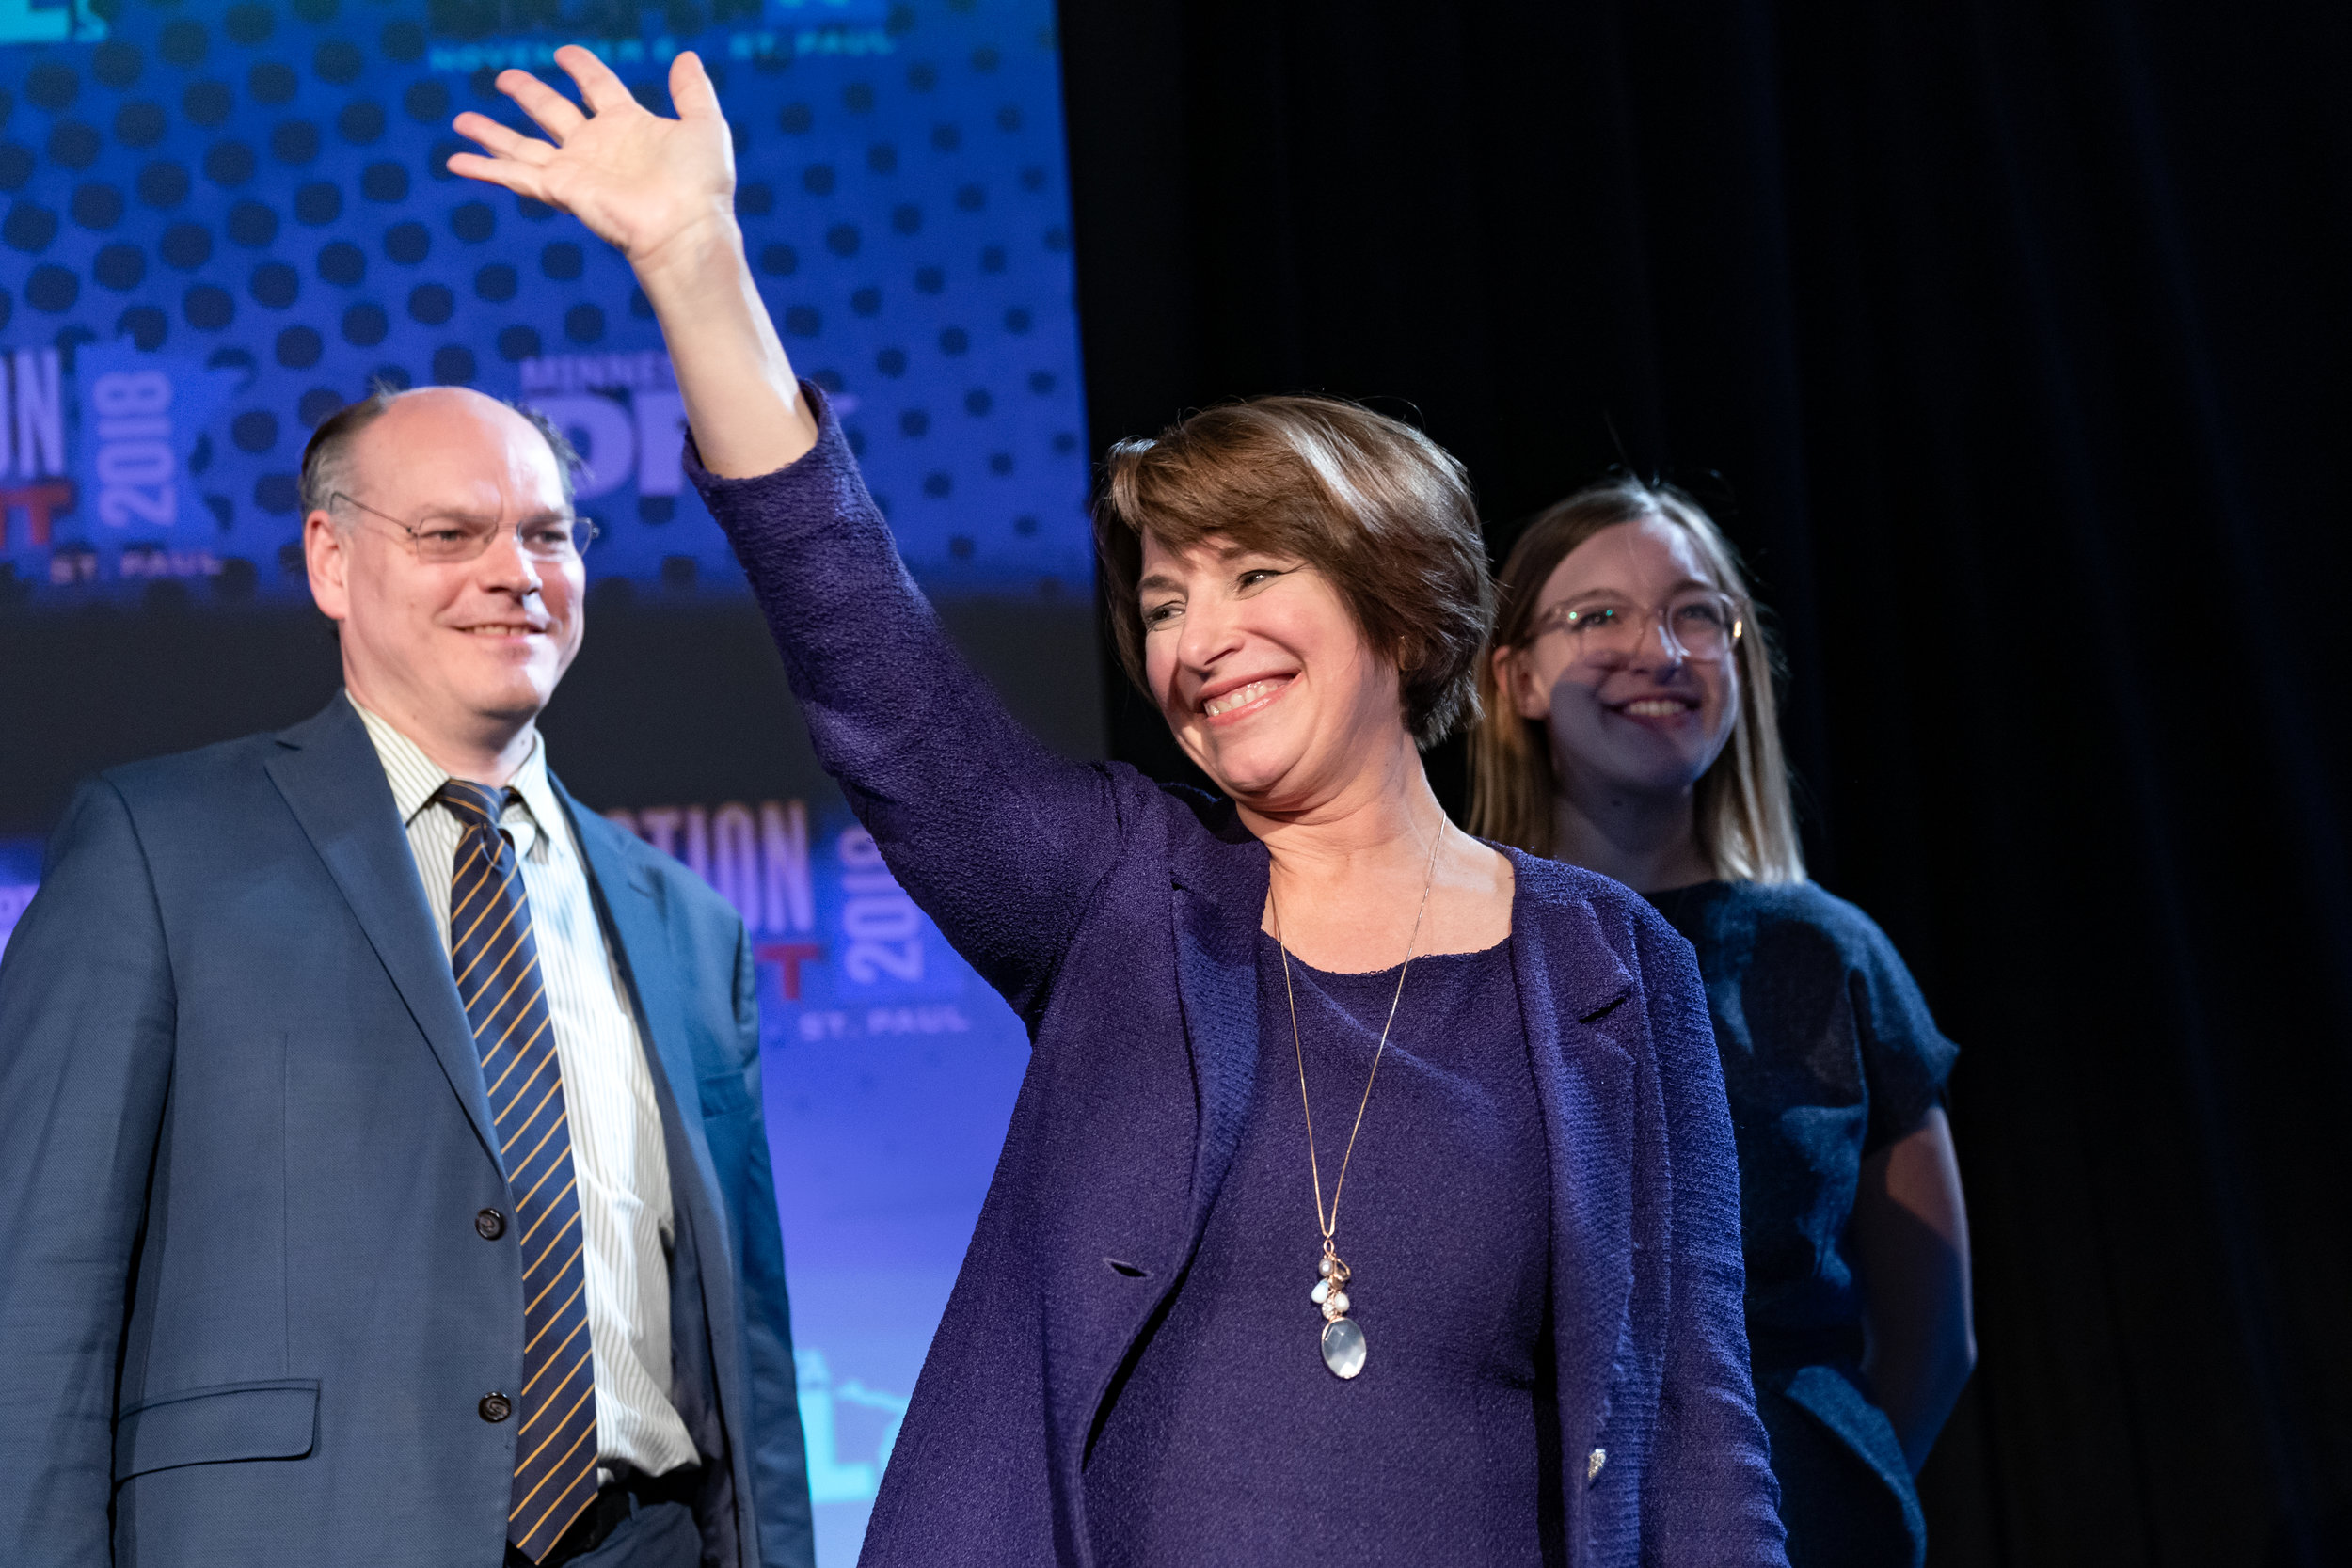 Amy Klobuchar waves to the crowd at the Minnesota DFL election night party in St Paul, MN